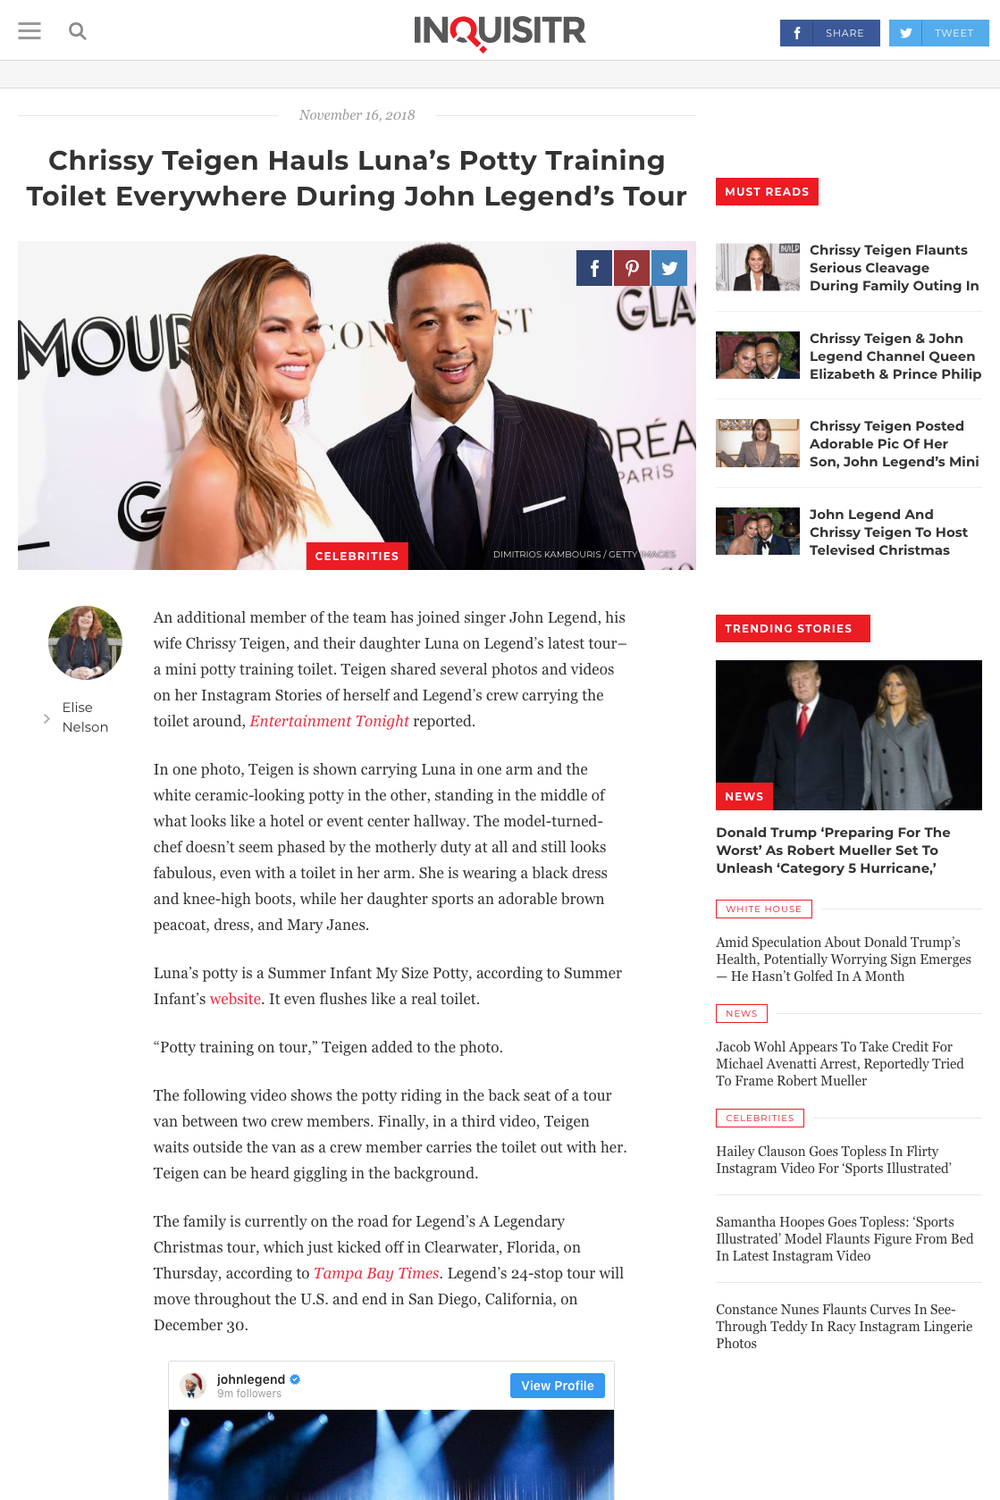 2018.11.16_Inquisitr_Summer Infant My Size Potty with Celebrity Chrissy Teigen_02 after update_original, cropped 2x3.png